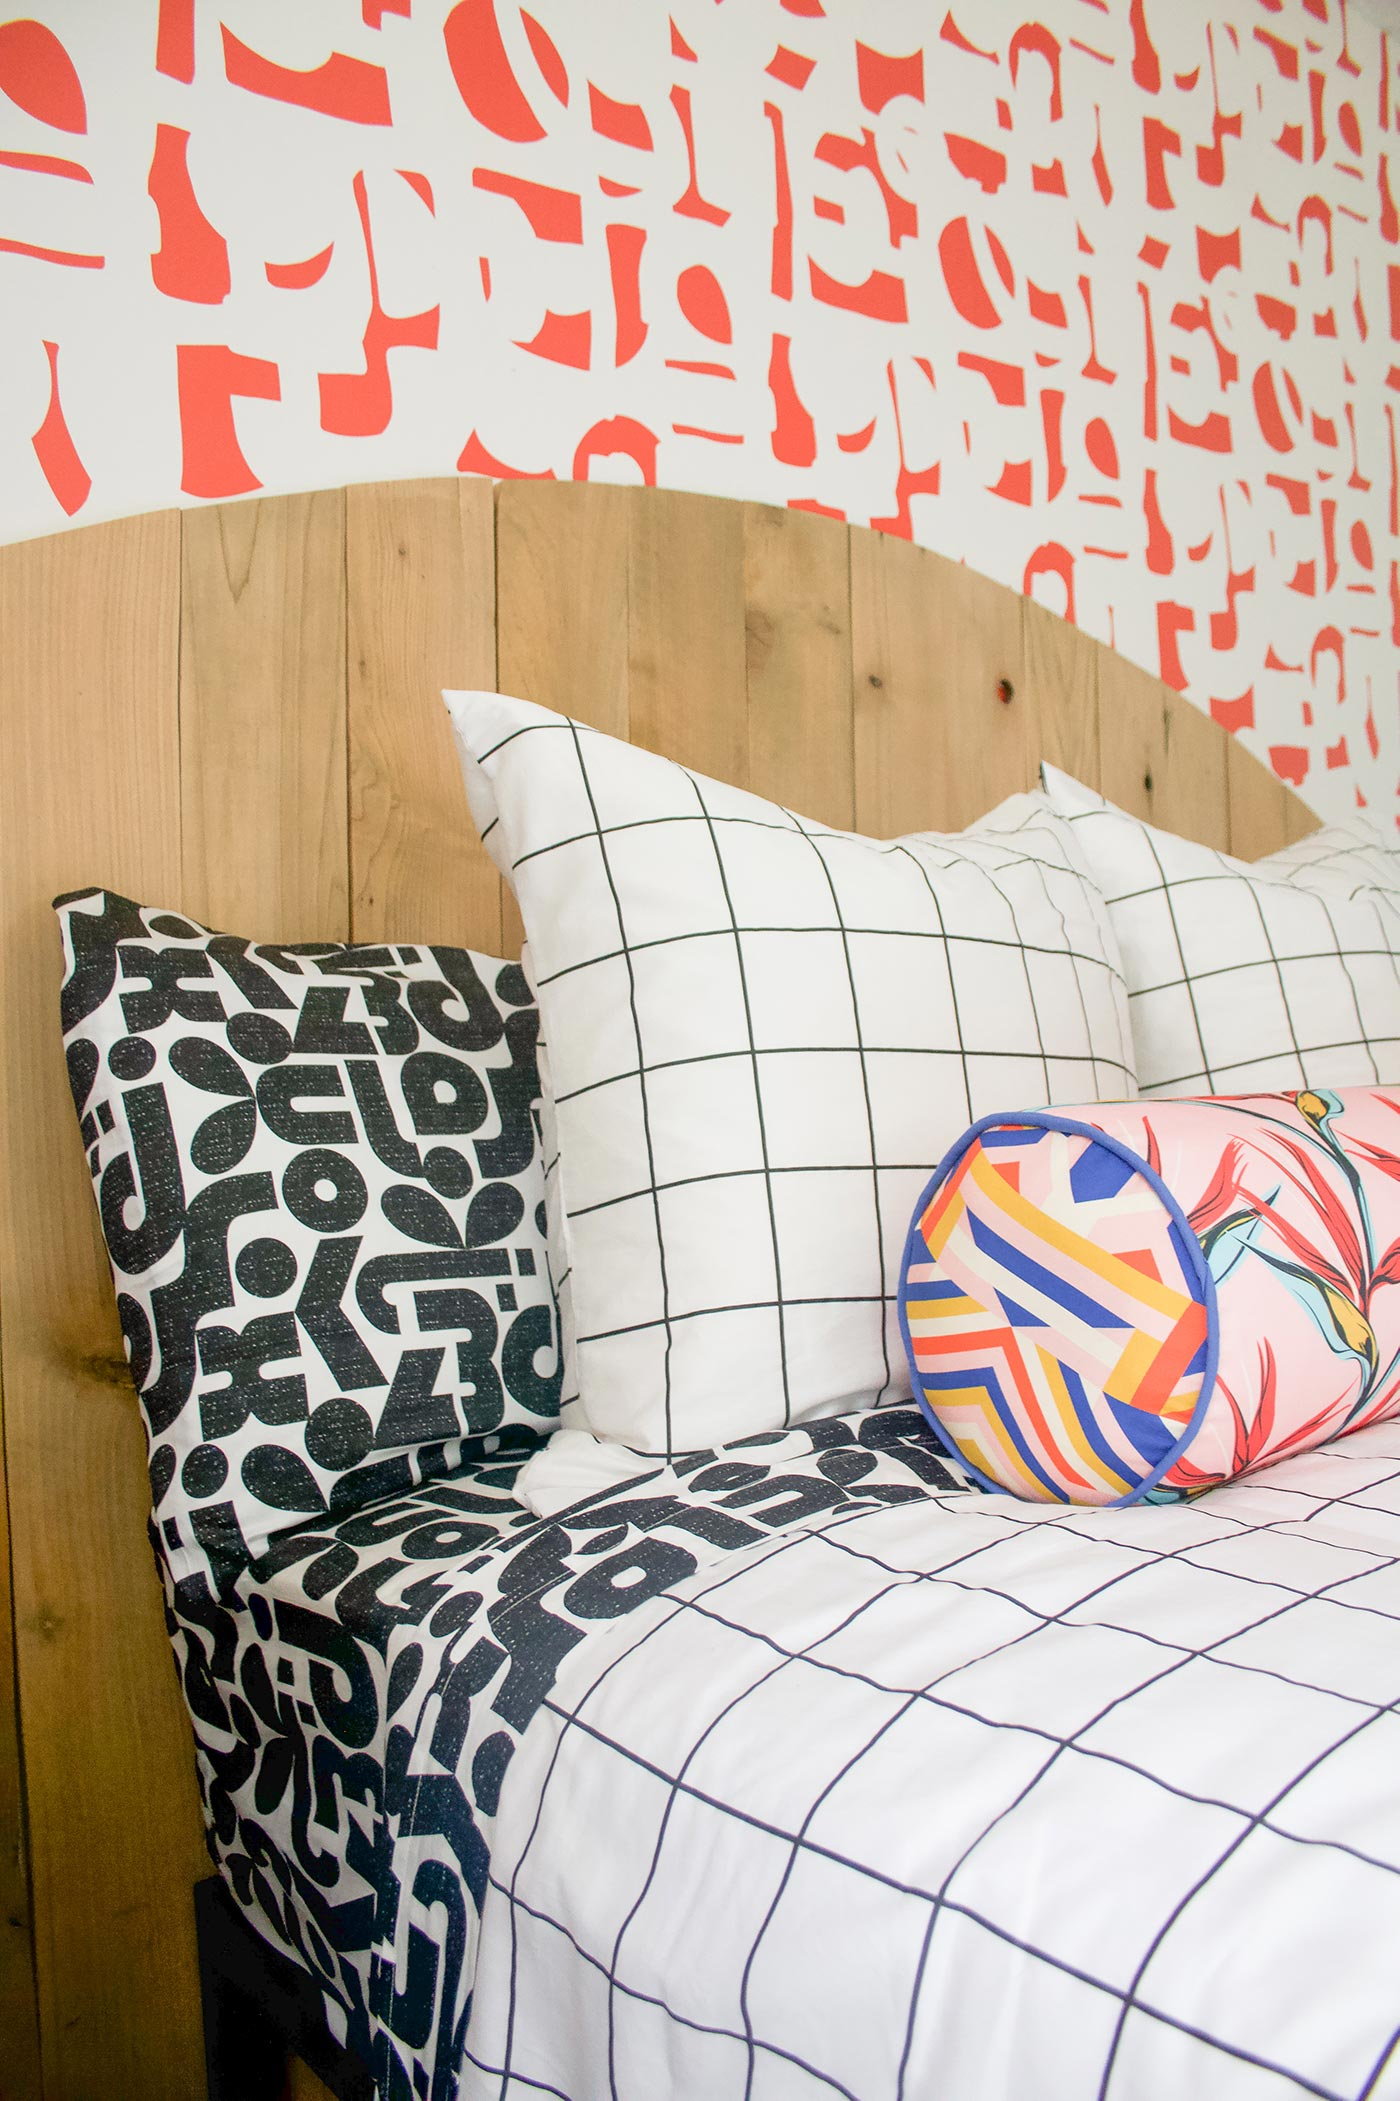 How to mix and match patterns and colors with spoonflower in the bedroom